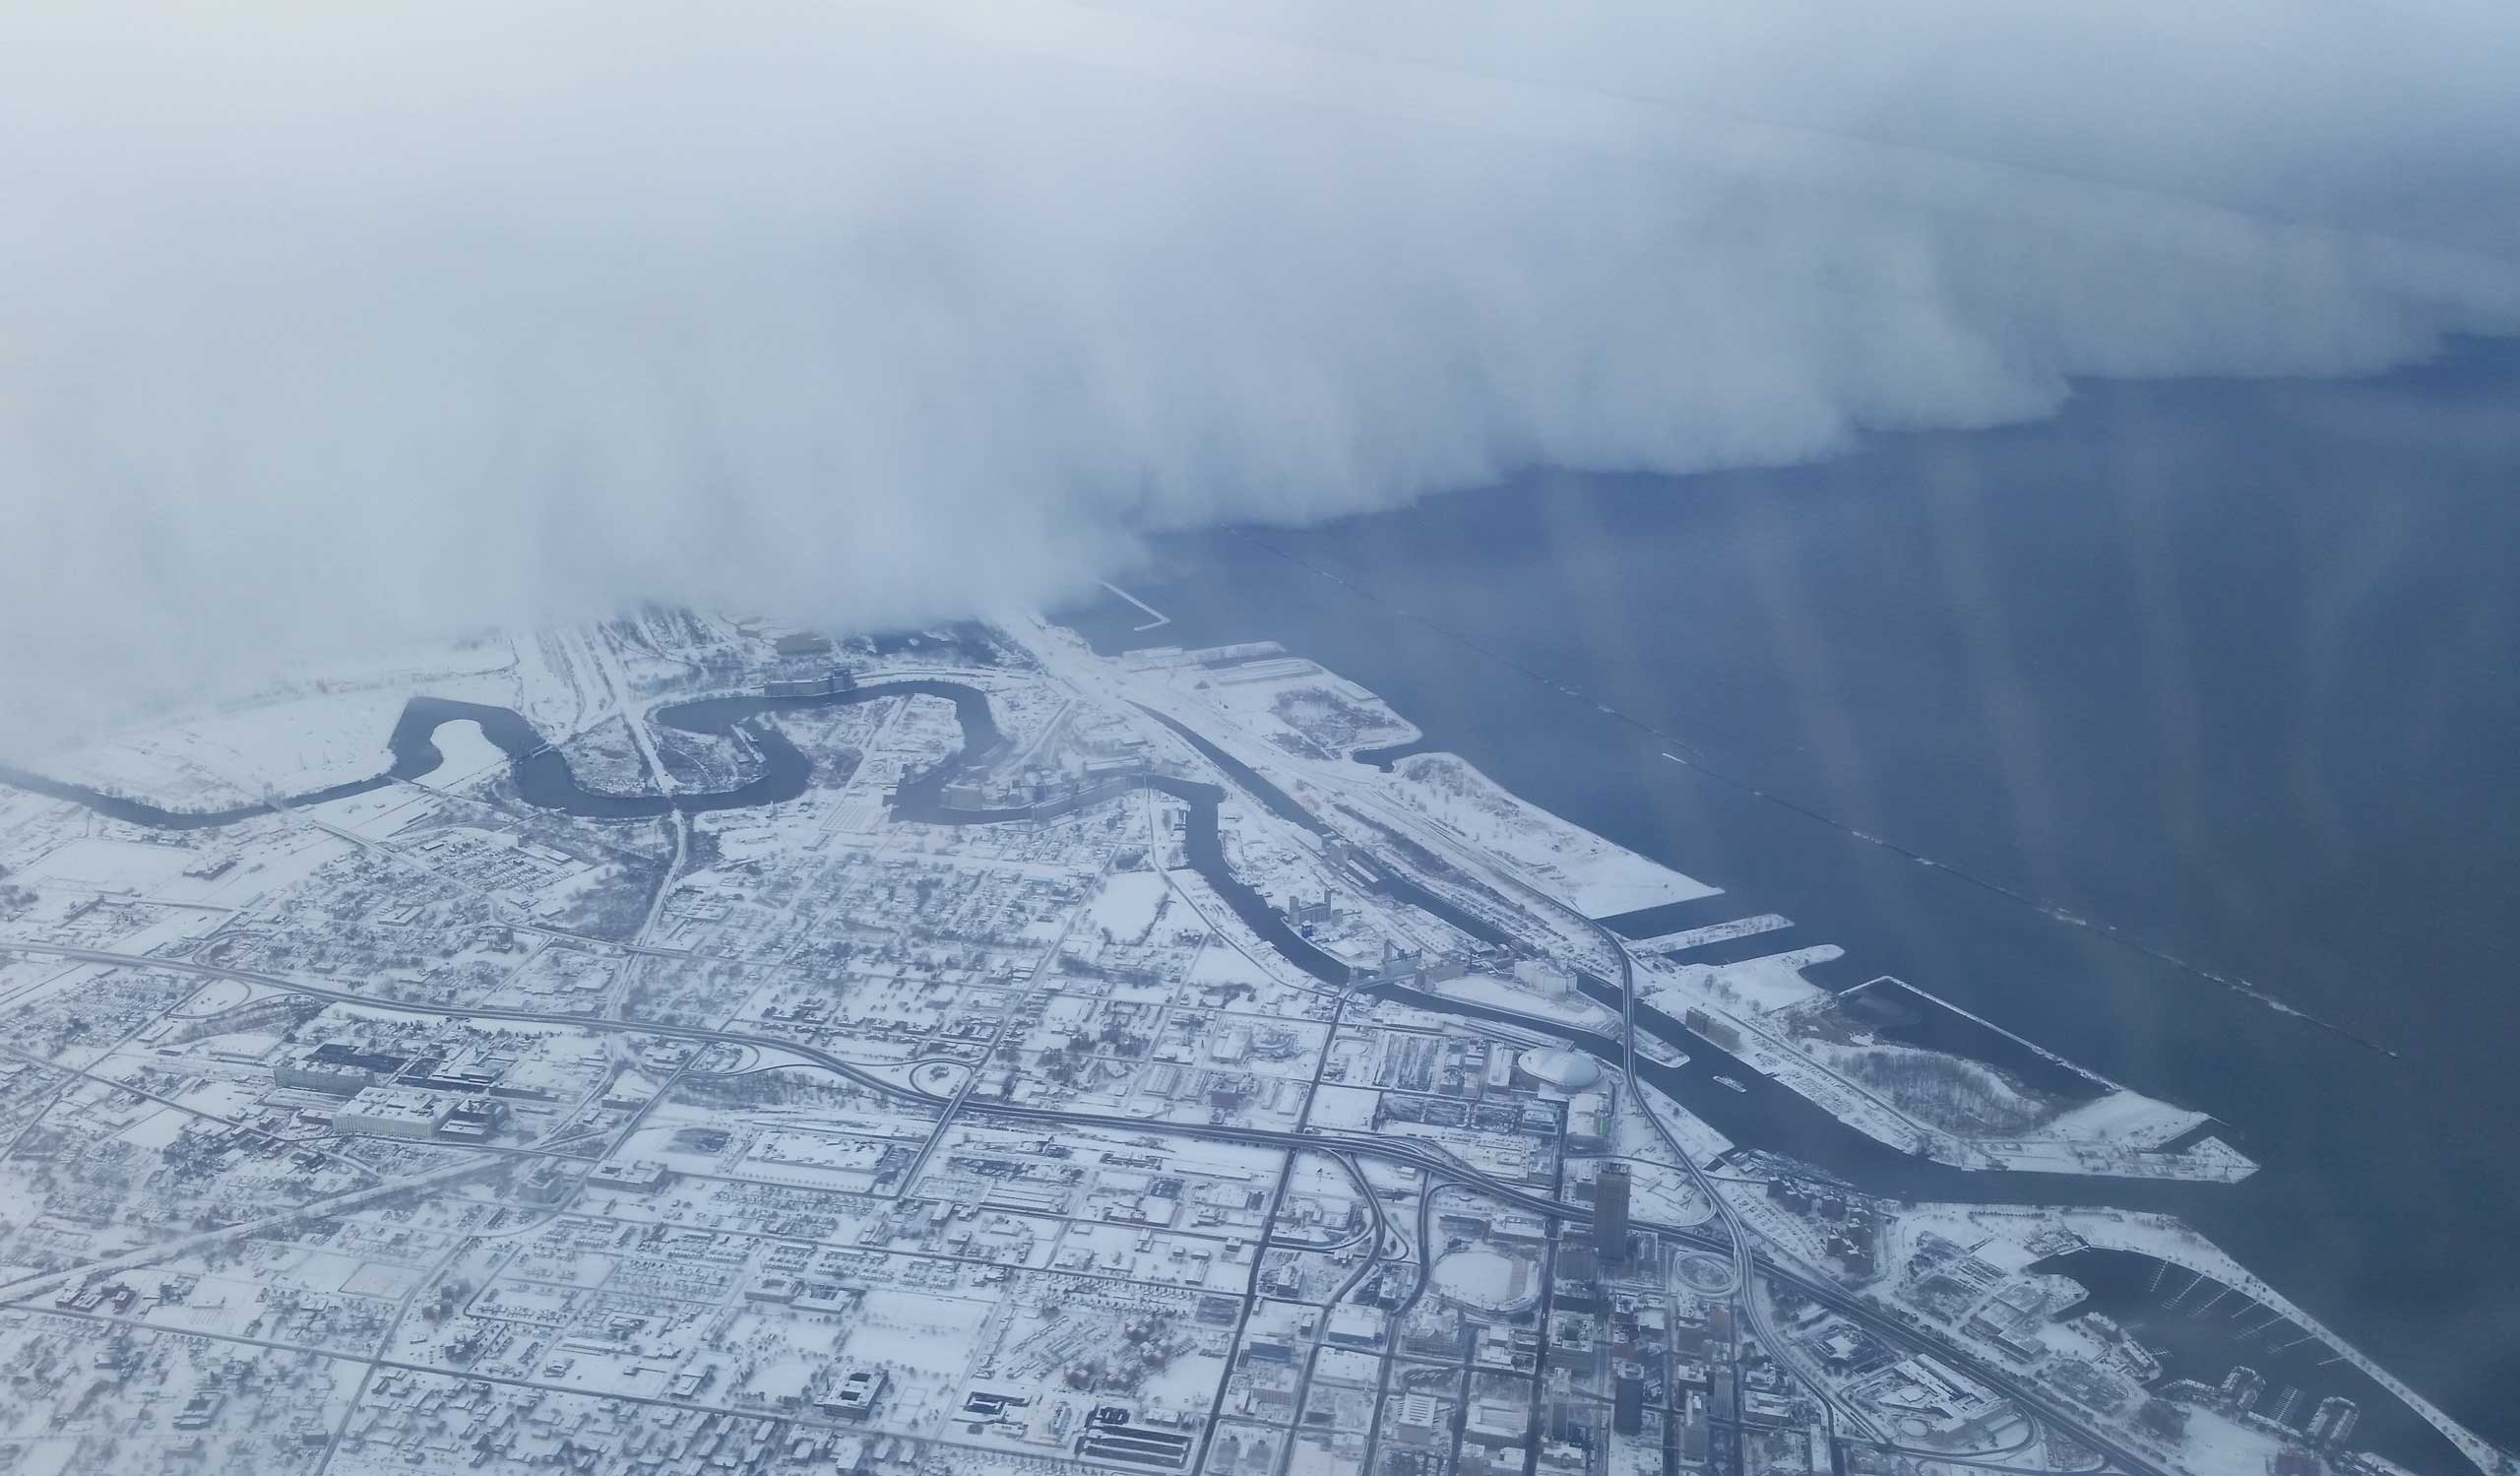 Nov. 18, 2014. This picture was taken by Jeffrey Suhr on his way from Buffalo, N.Y. to Minneapolis and was posted on his Twitter.                                   I live 3 miles from the airport, and I was surprised how much snow was at my house and how little was at the airport. So when I saw the well-defined snow band after take off, I thought I would take a photo,  Suhr tells TIME.